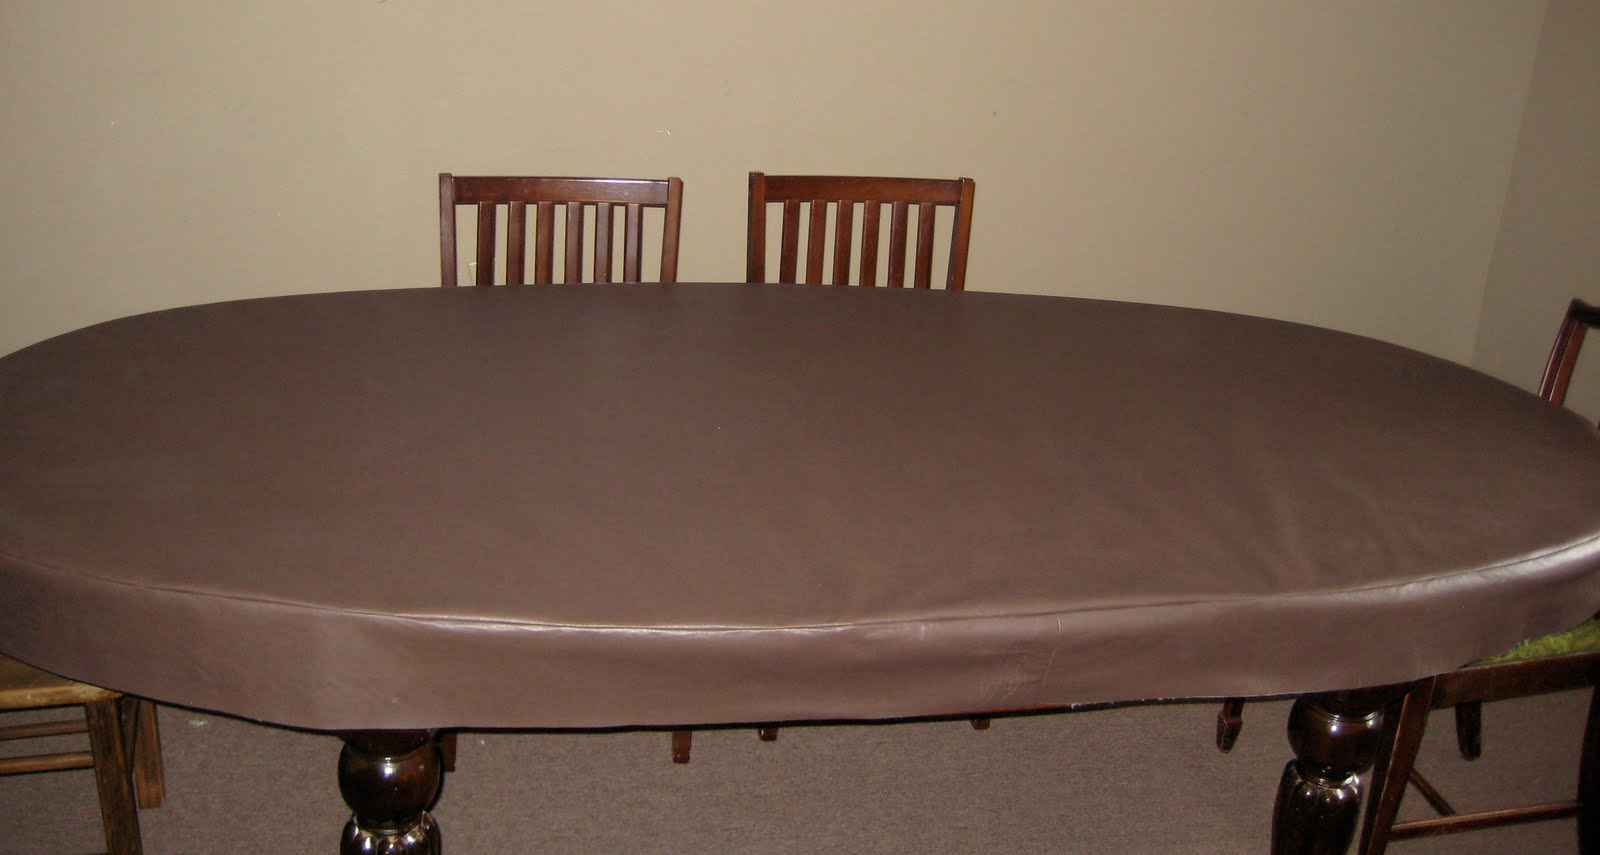 How to make a fabric table cover - Purchase Enough Fabric To Cover The Width And Length Of The Table And Enough To Do The Sides Around The Entire Table I Made These Sides 5